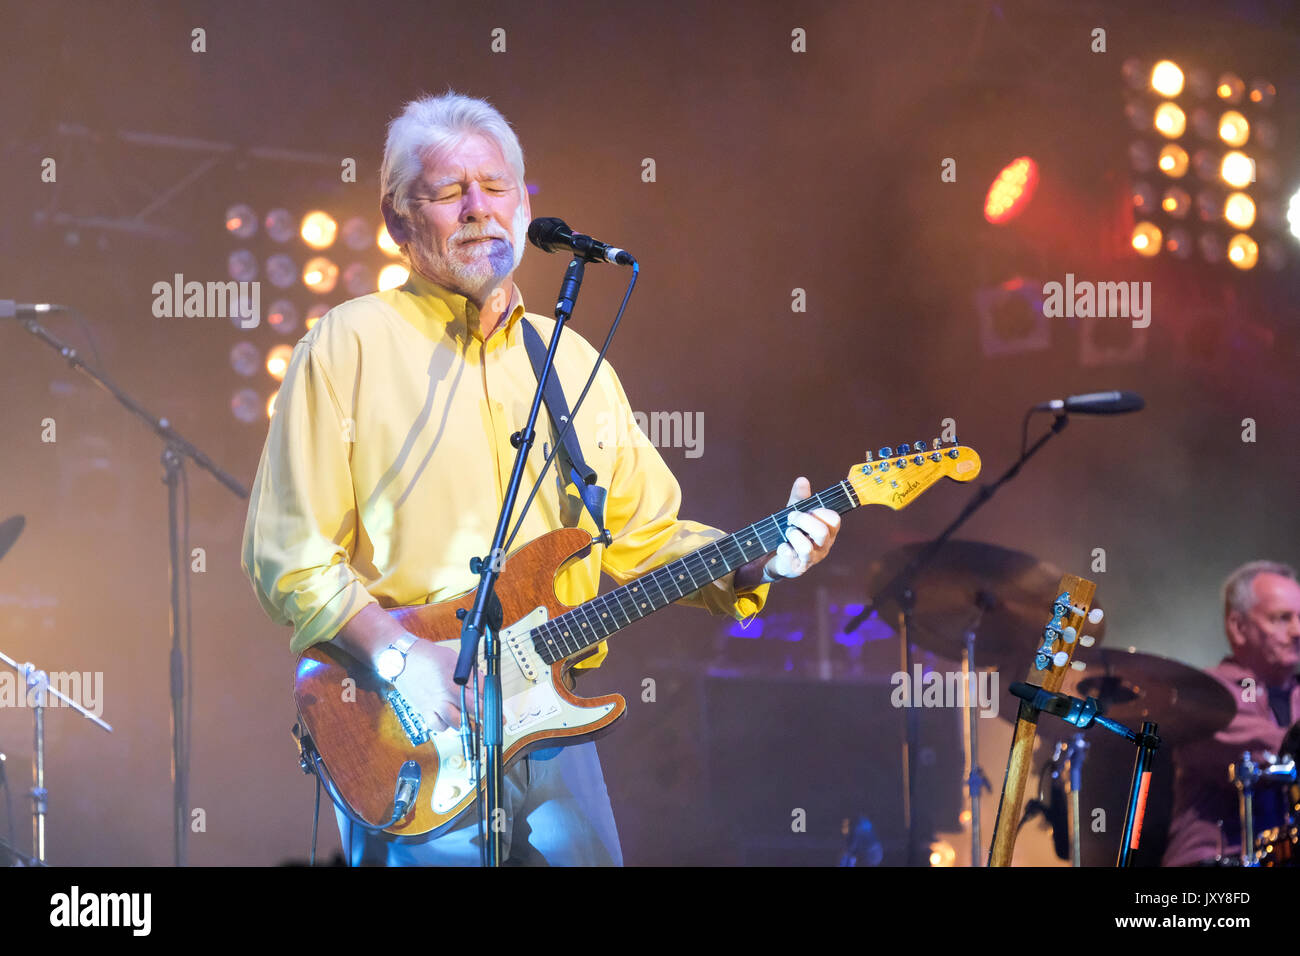 Simon Nicol of Fairport Convention performing at Fairport's Cropredy Convention, Banbury, Oxfordshire, England, Stock Photo